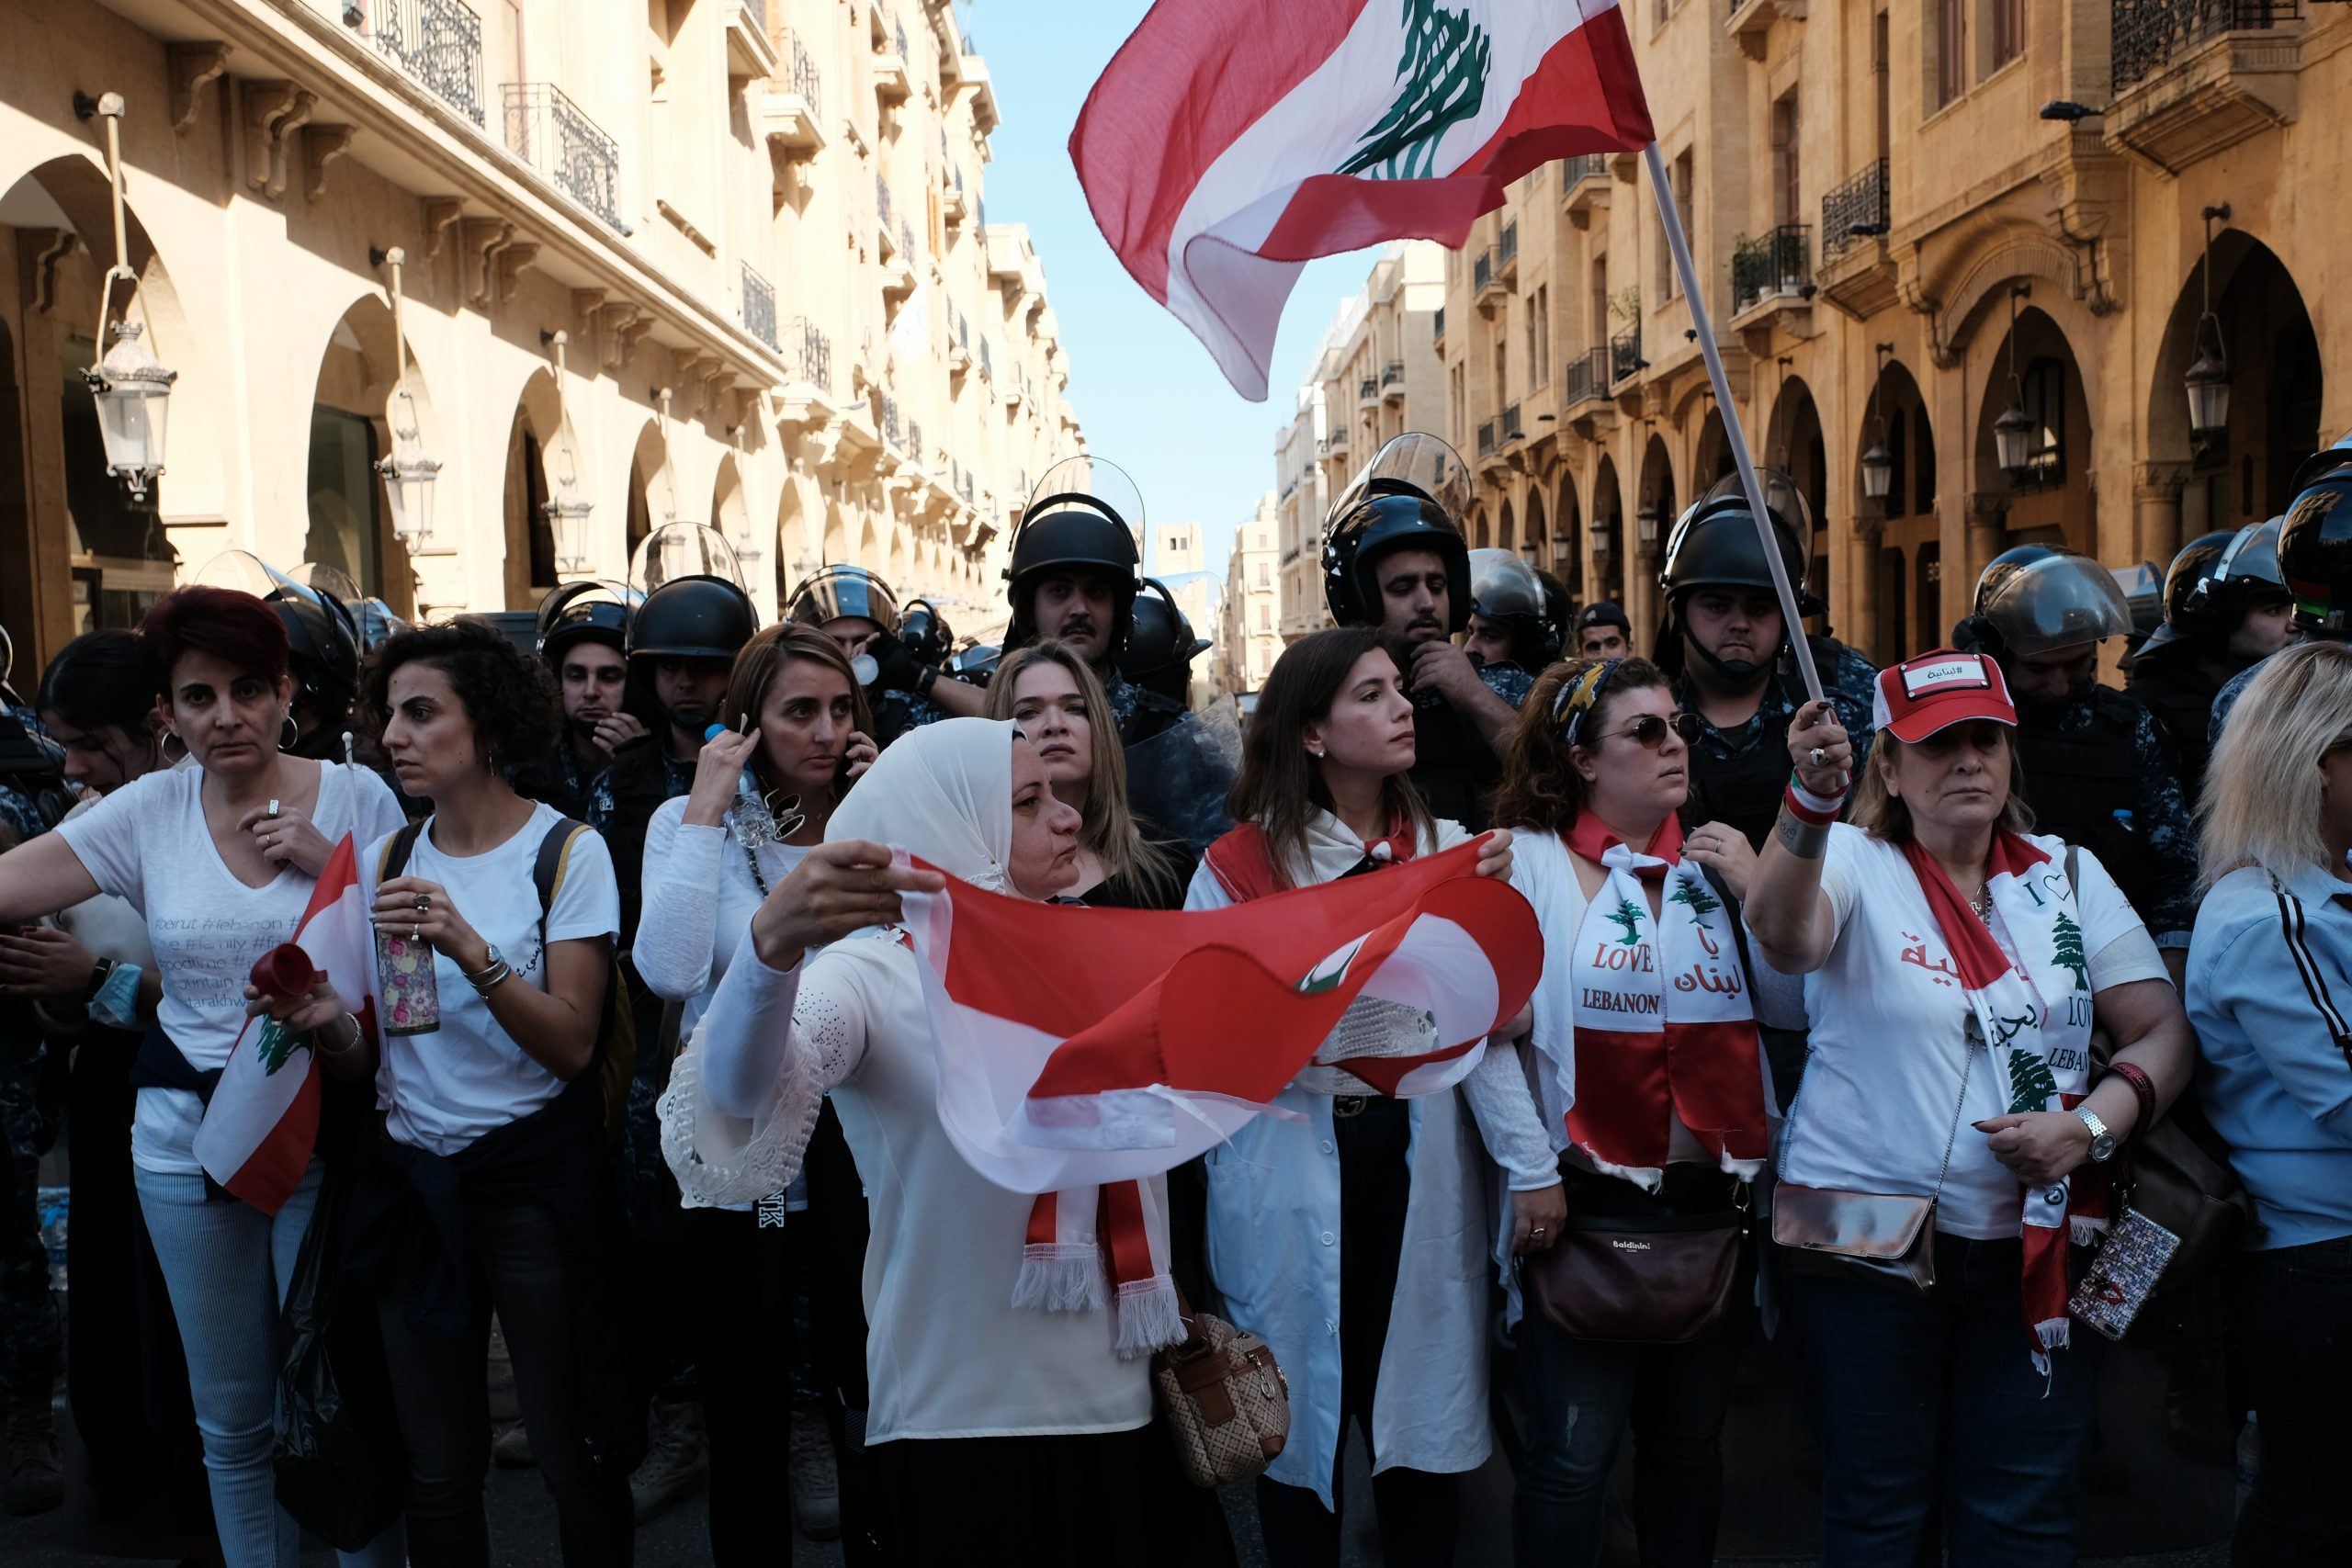 Women protesters forming a line between riot police and protesters in Riad el Solh, Beirut, November 18, 2019 (Wikimedia Commons)